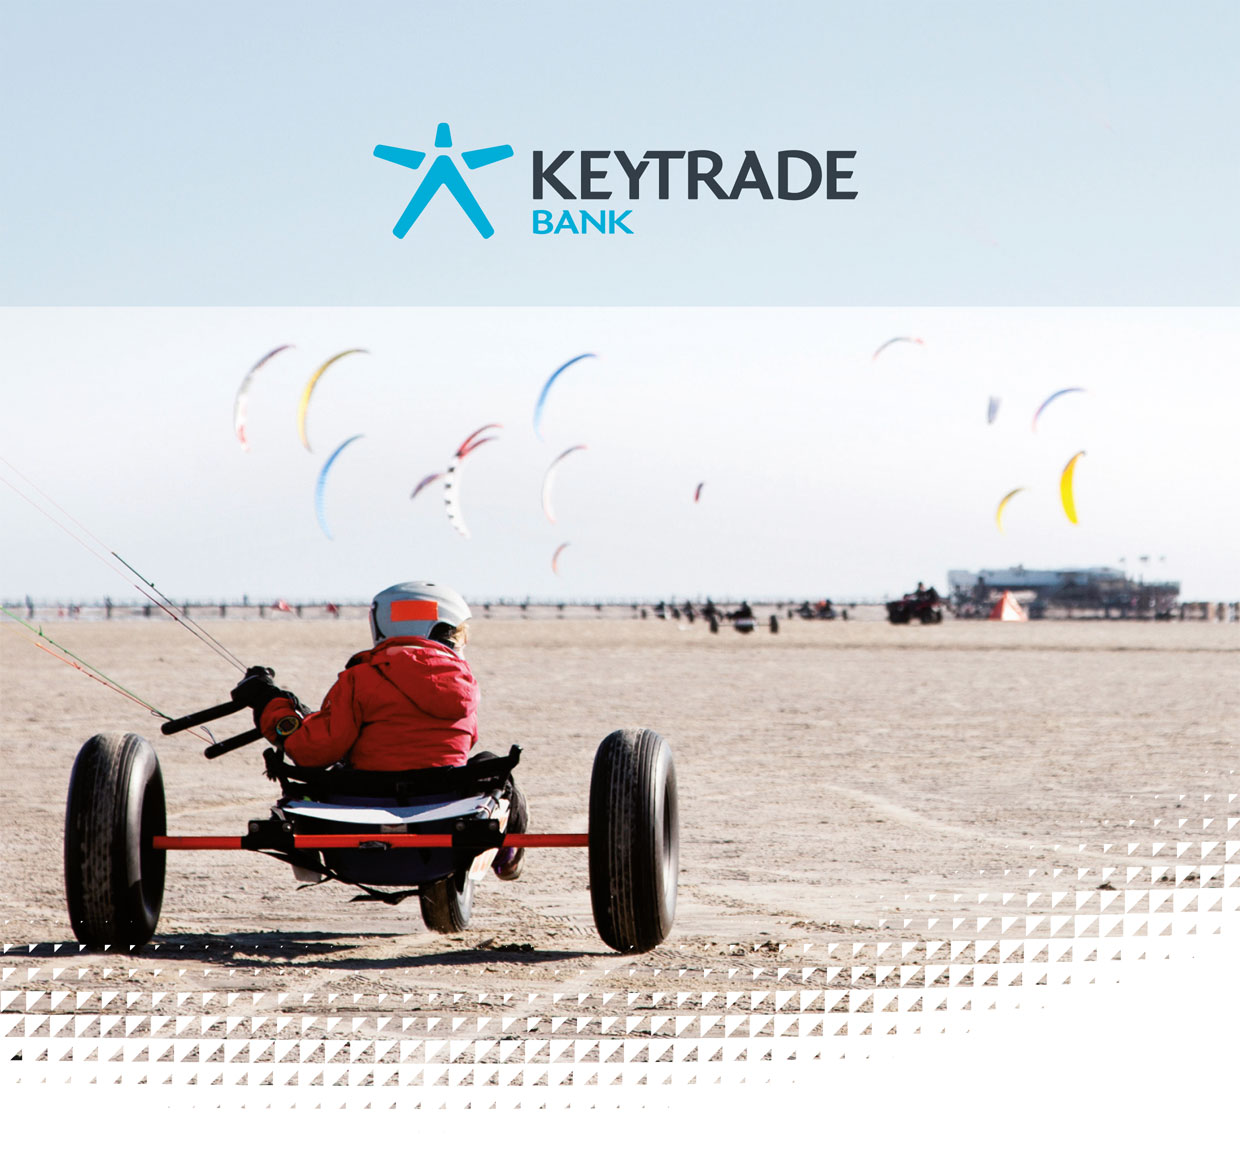 image coprorate de Keytrade Bank